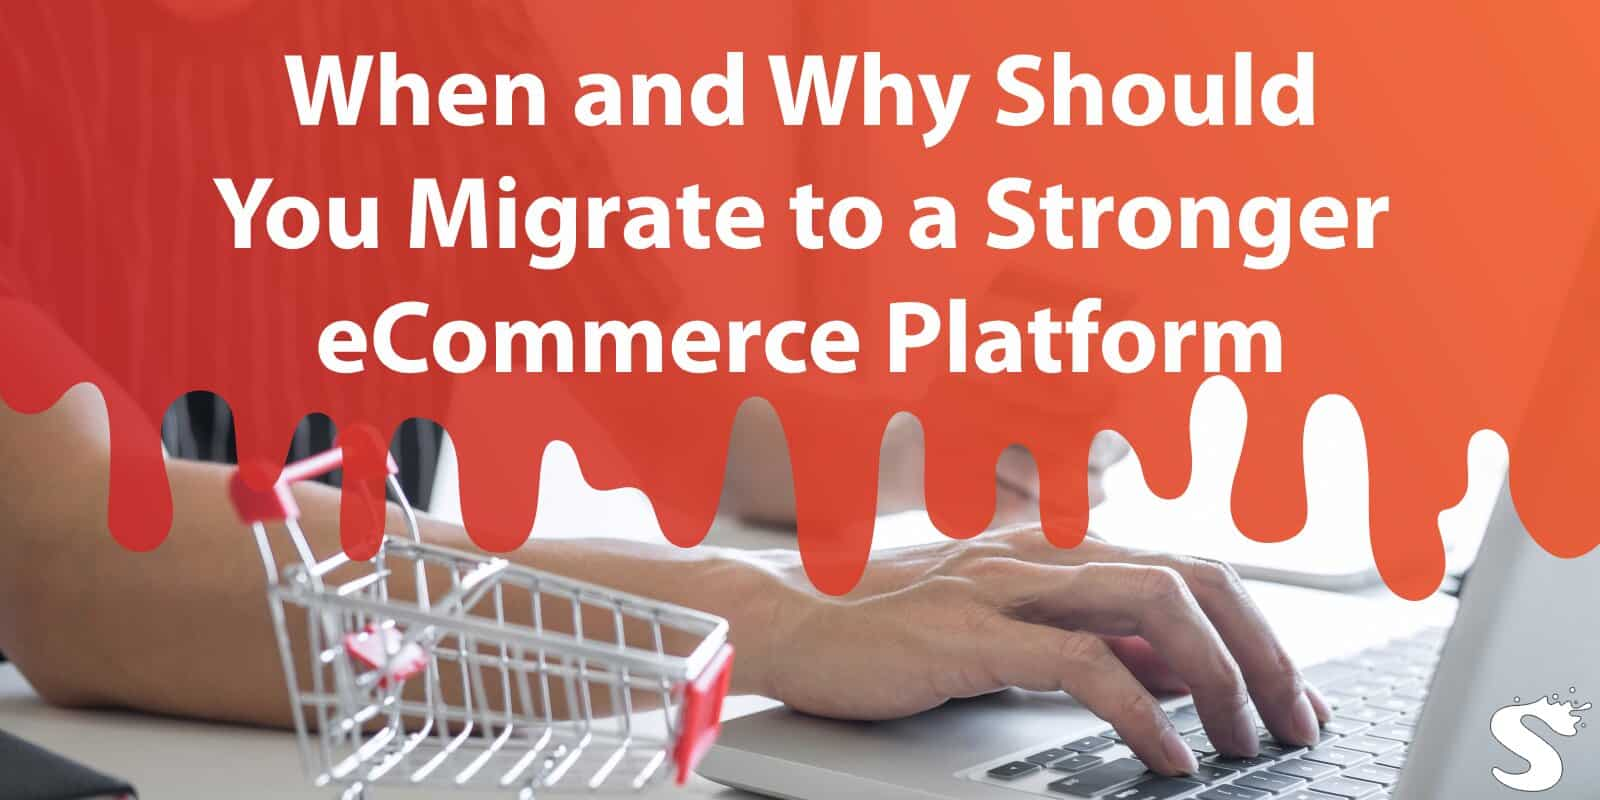 When and Why Should You Migrate to a Stronger Ecommerce Platform